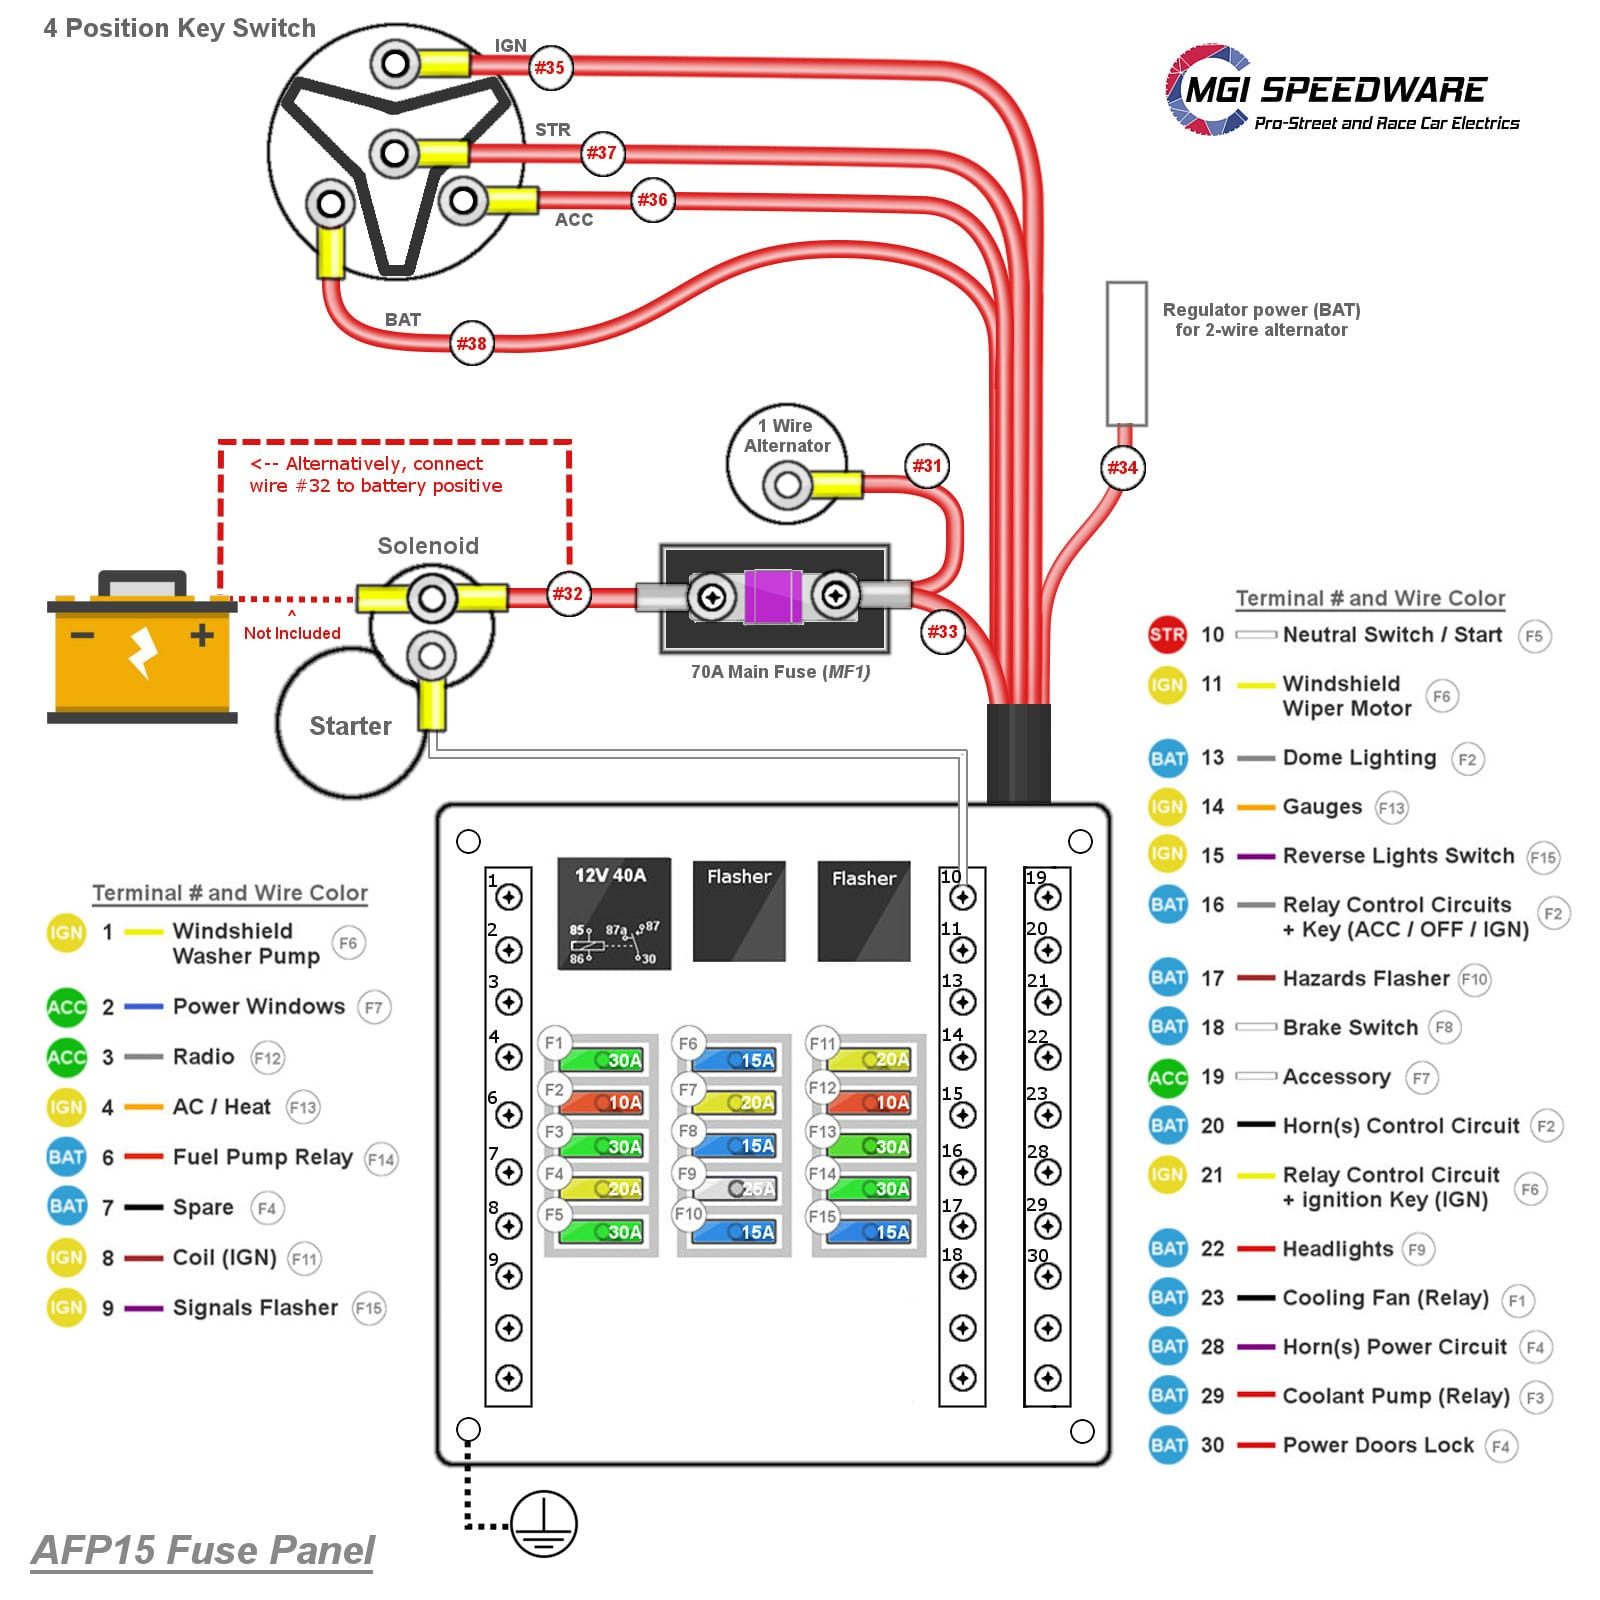 hight resolution of 12 volt universal fuse box with 15 fuses mgi speedware afp15installation manual afp15wiring diagram